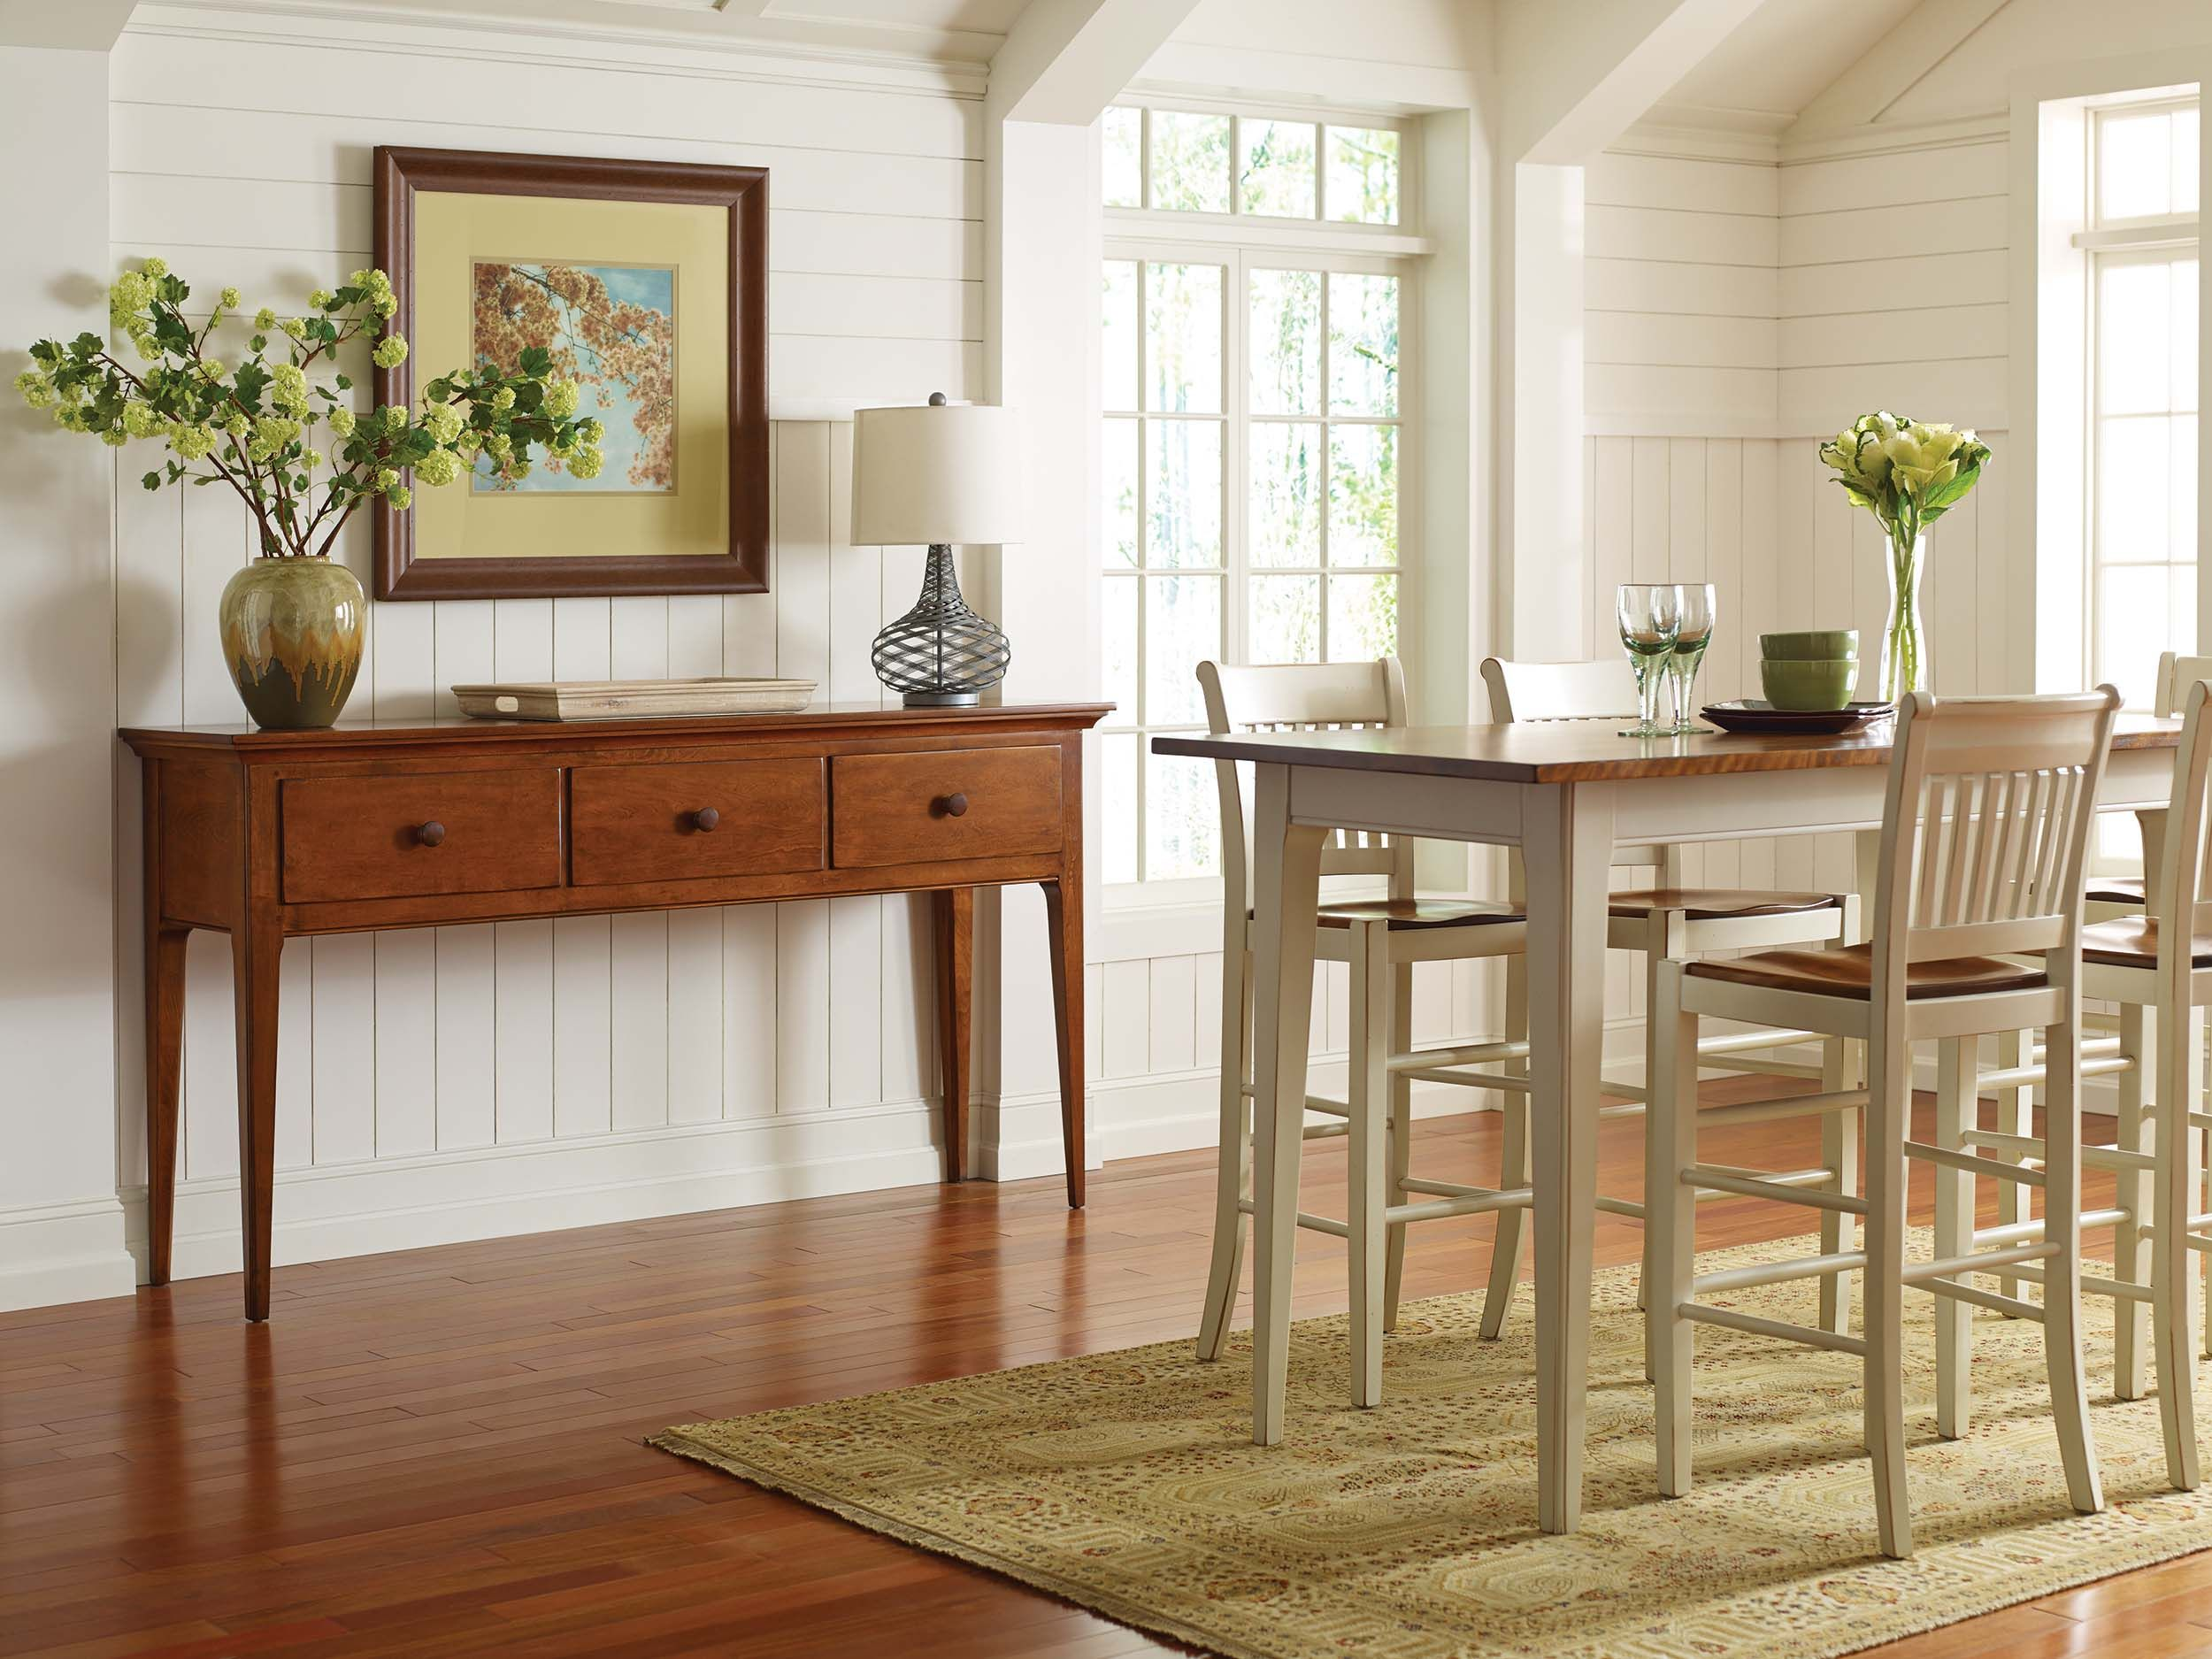 Superieur Nichols U0026 Stone Hancock Collection By Stickley Furniture  Shown Here:  Hancock Bistro Table